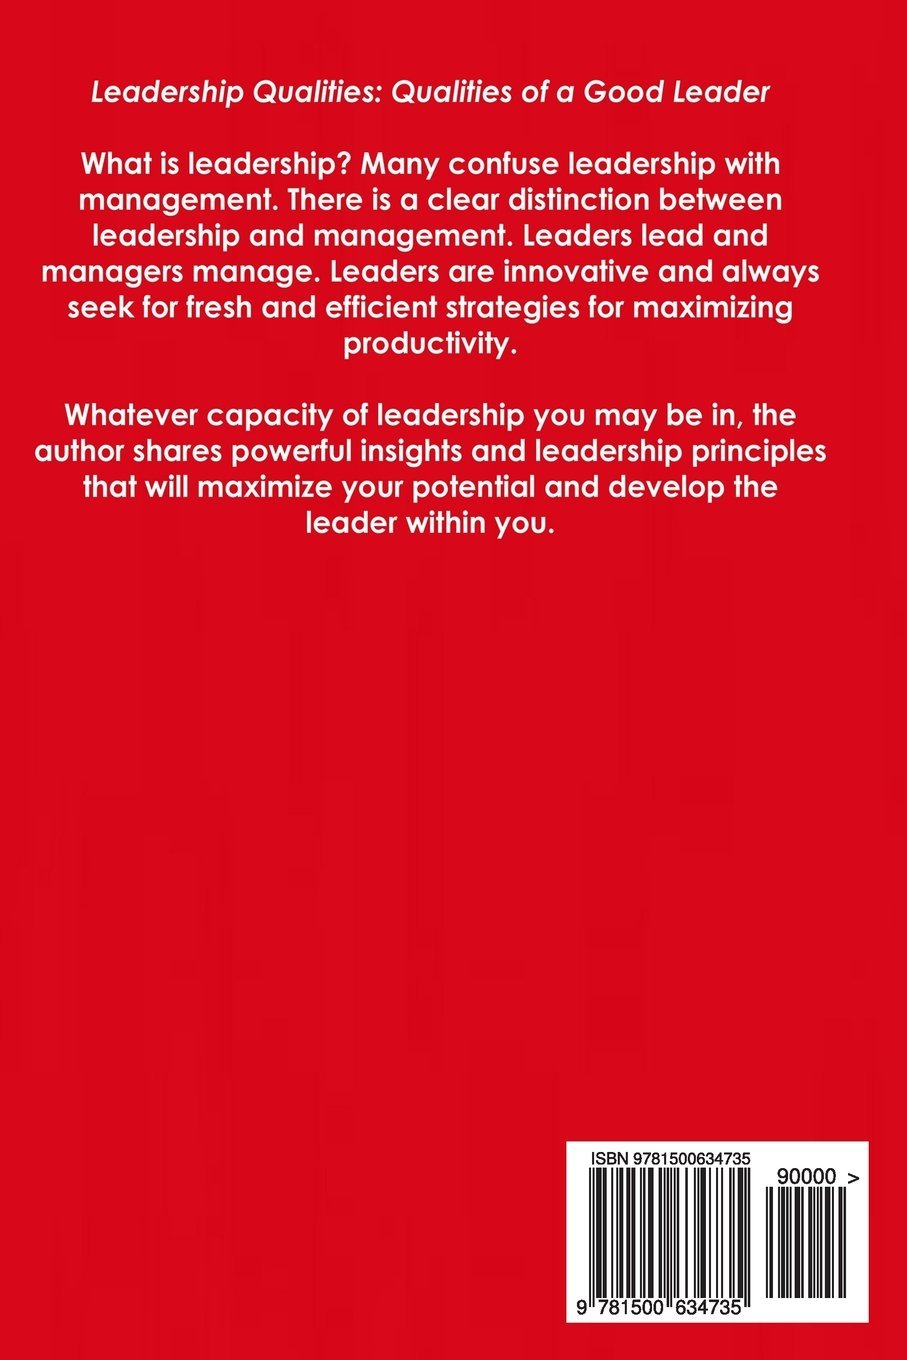 leadership qualities qualities of a good leader jim collins leadership qualities qualities of a good leader jim collins 9781500634735 com books